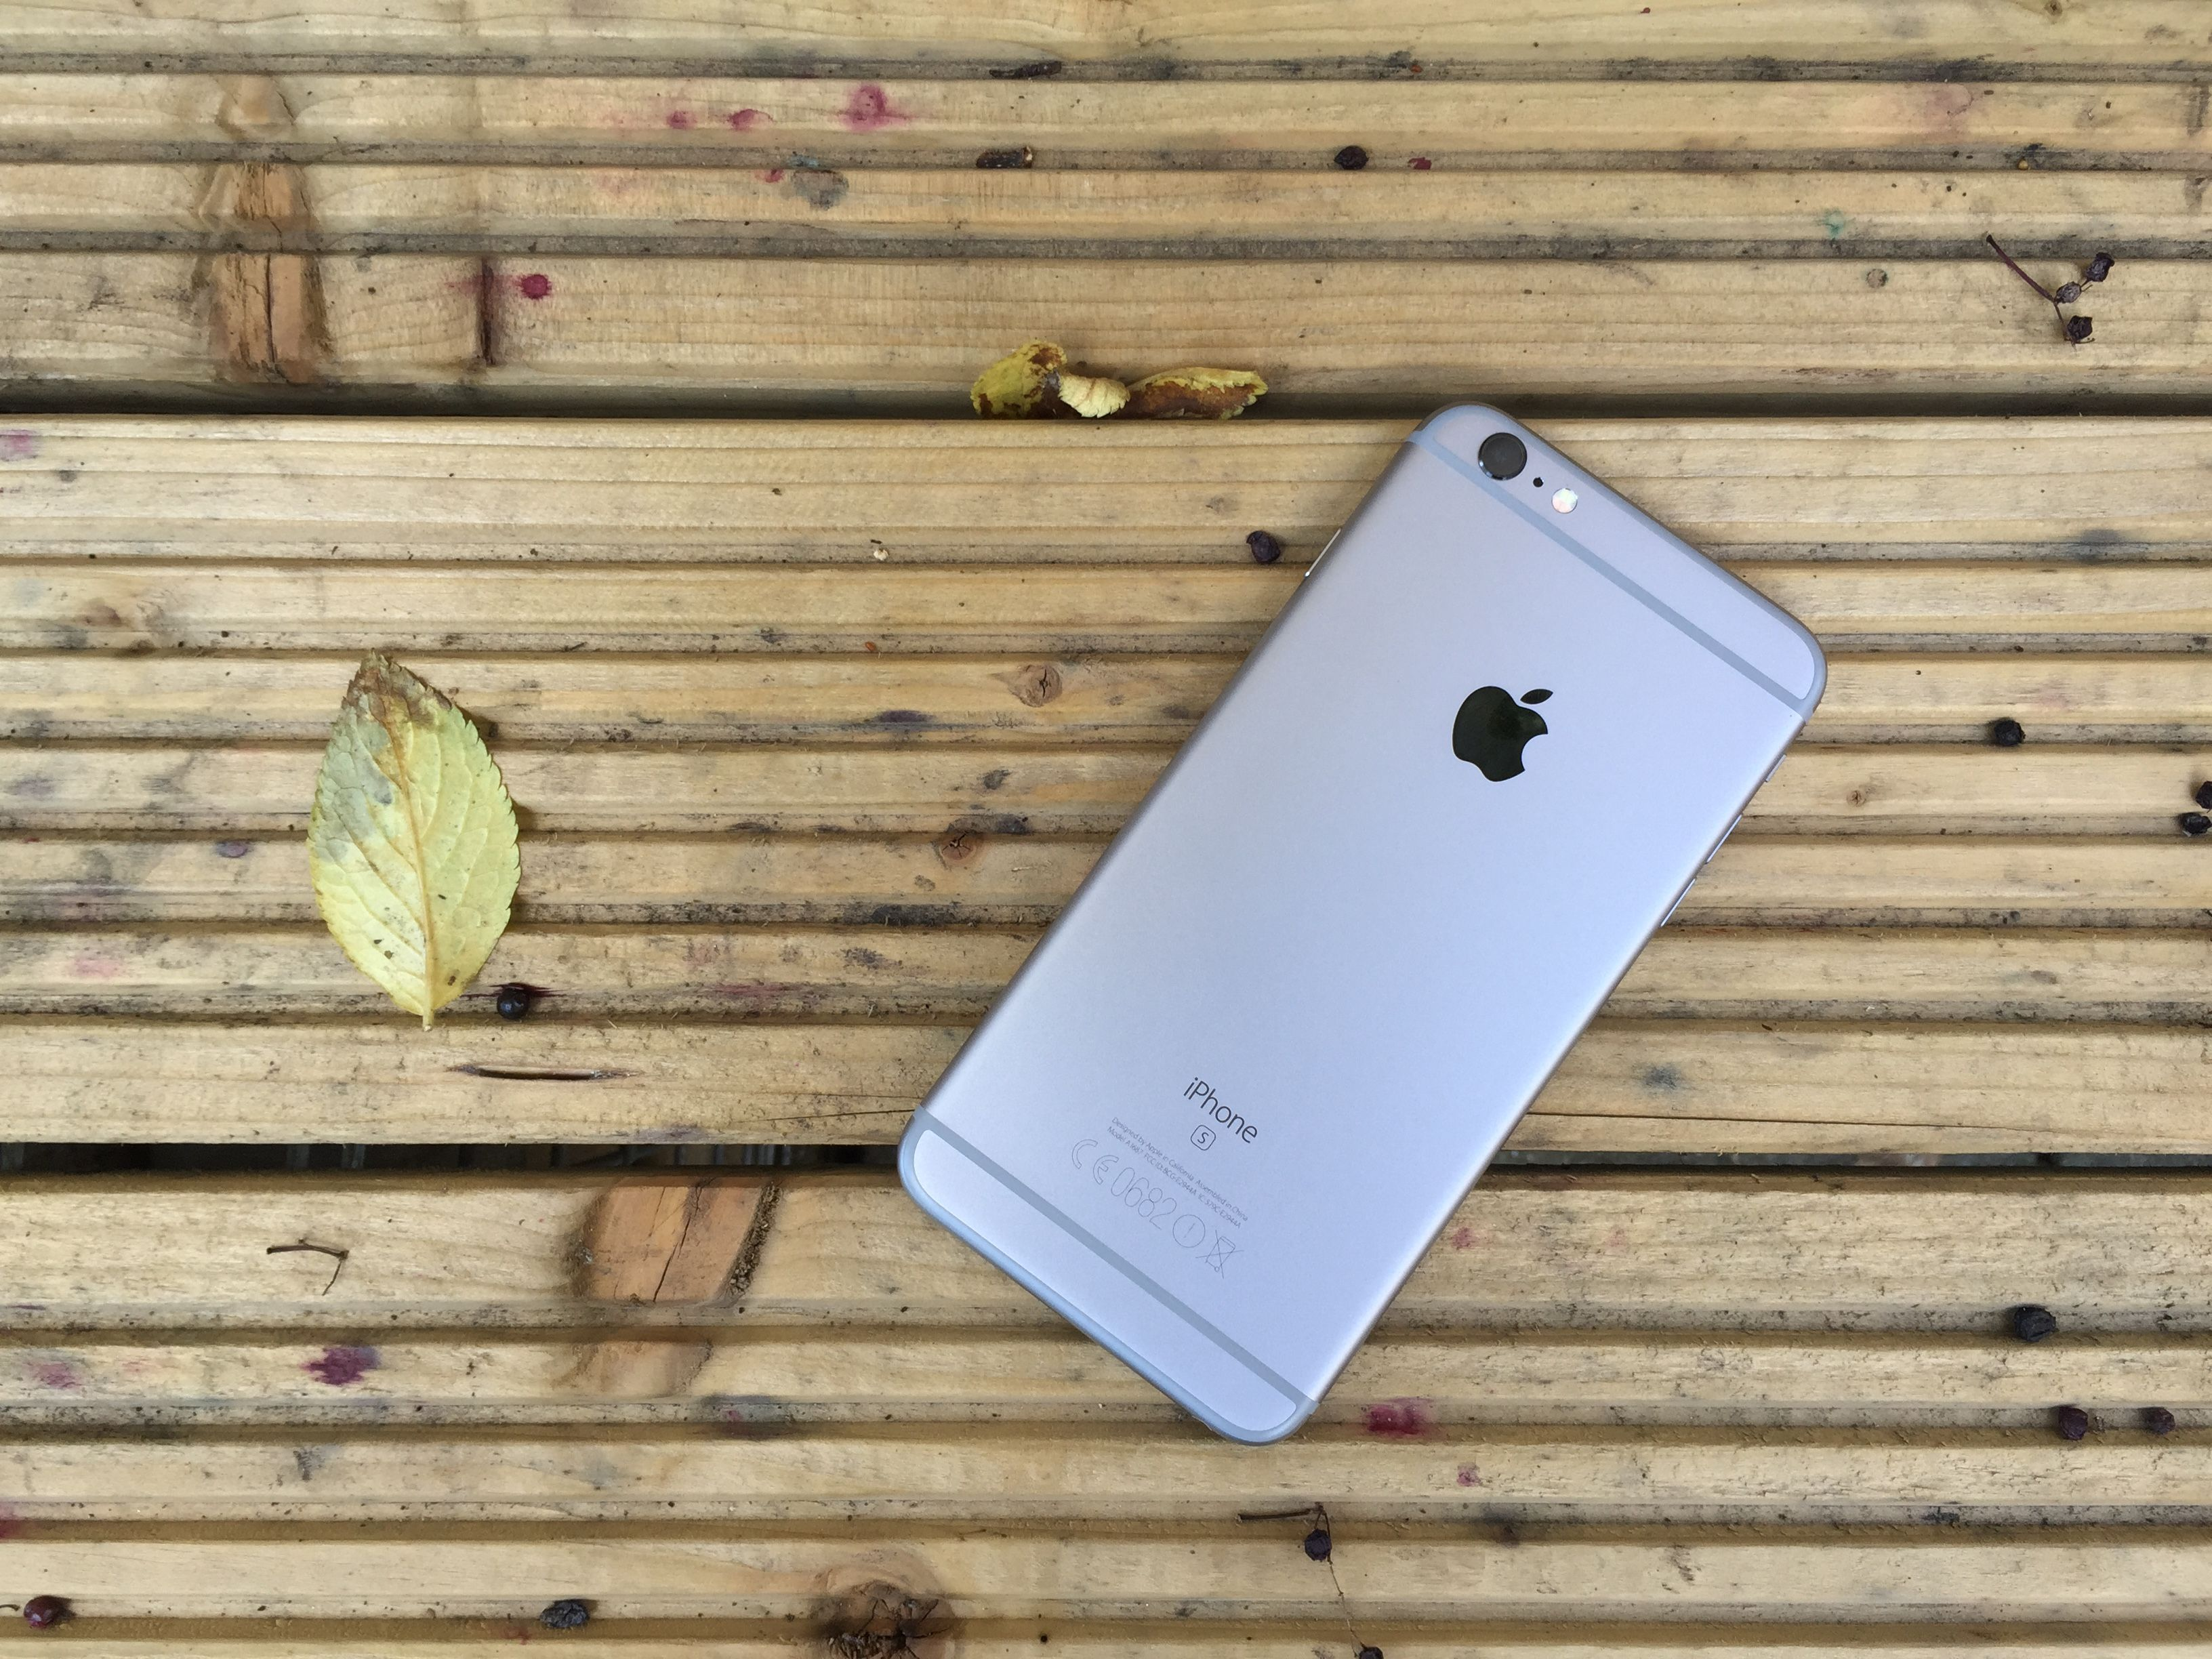 7 Things to Expect From Apple's iPhone 7 Event